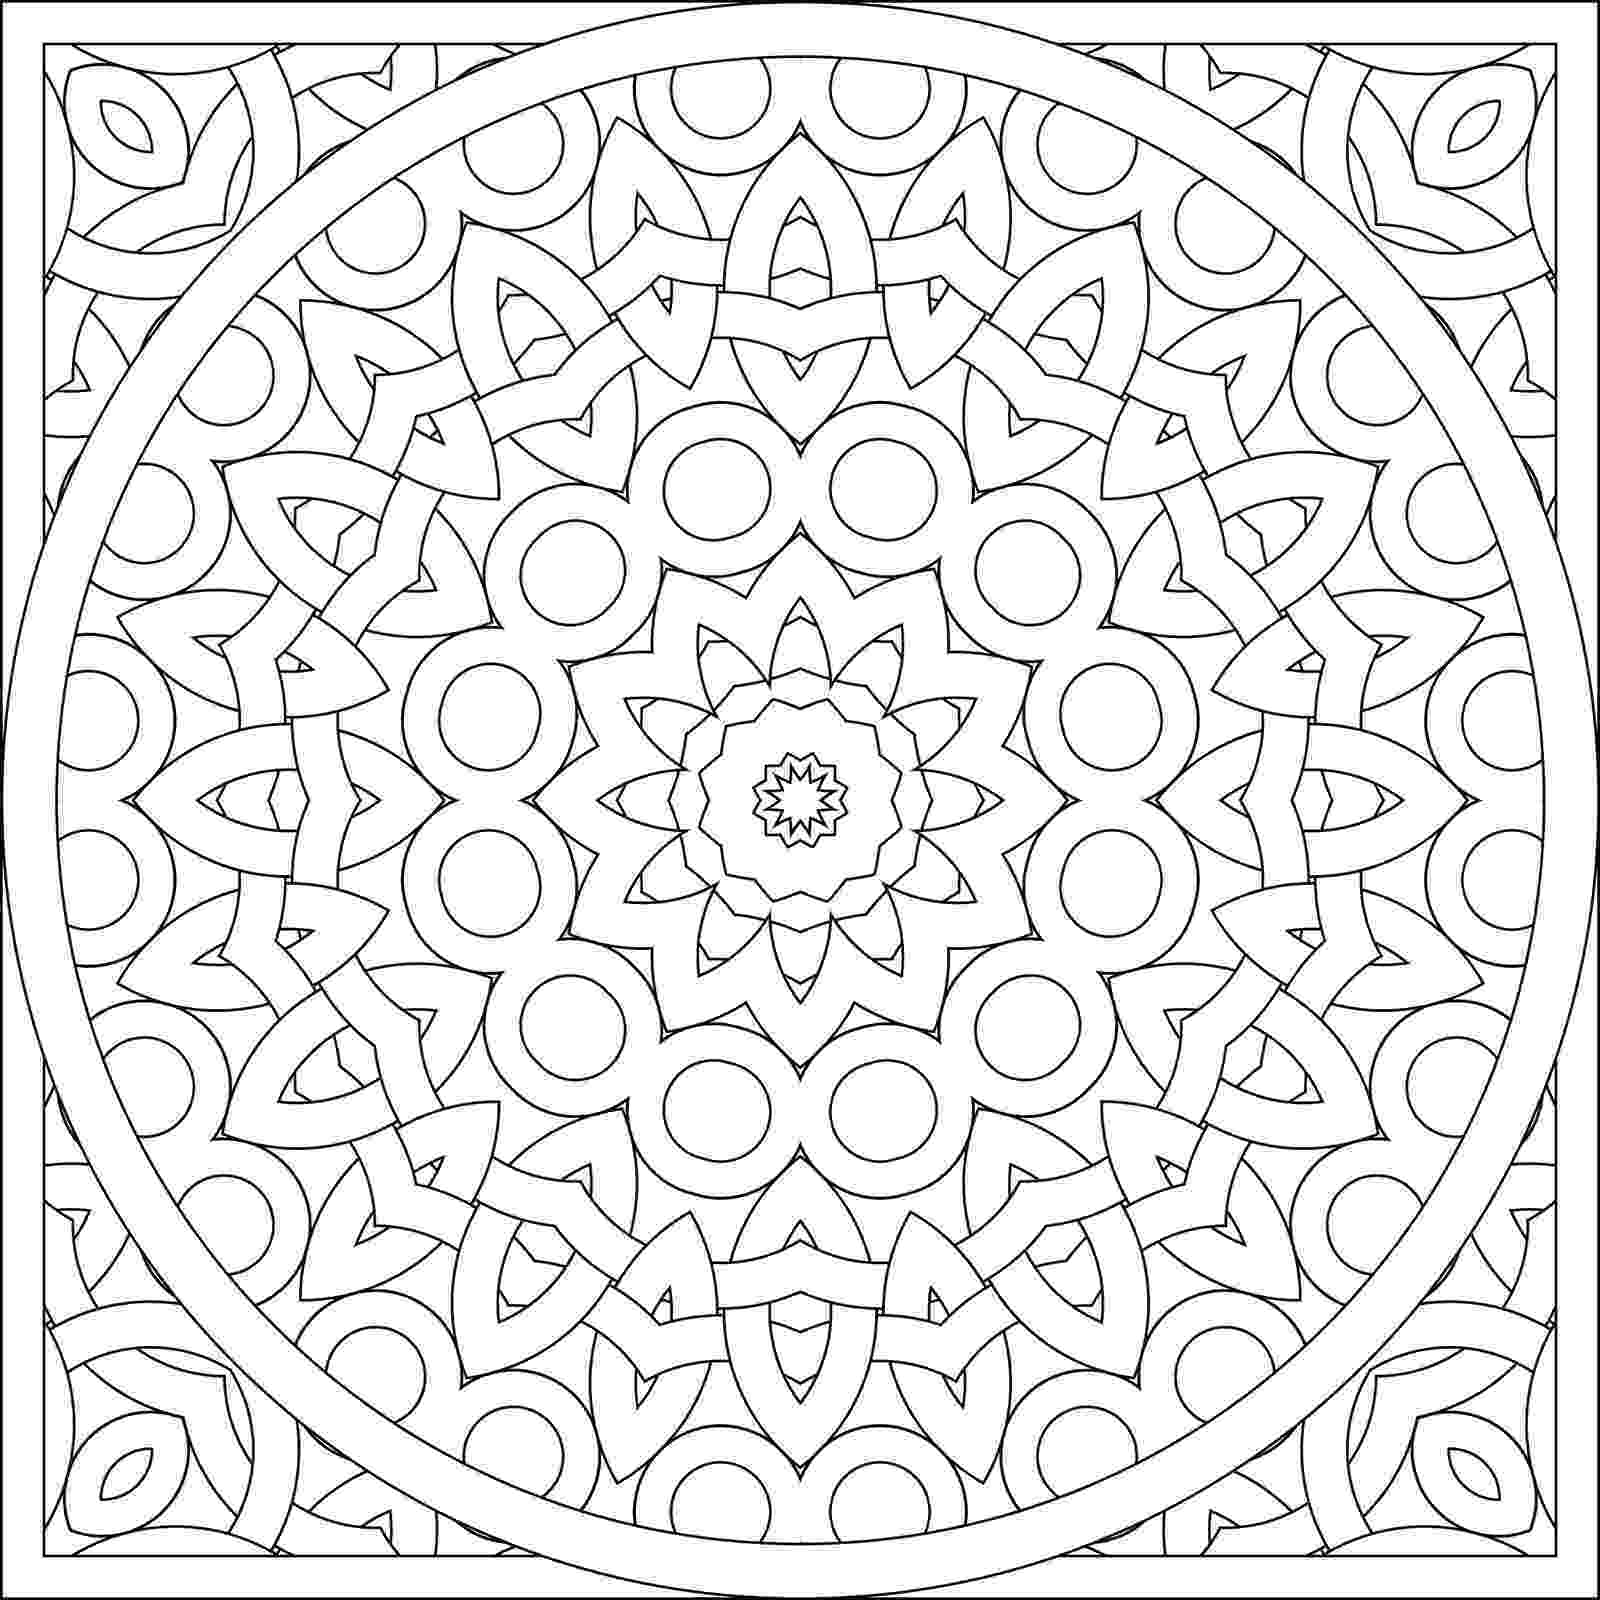 patterns colouring try piy print it yourself patterns for some cool colouring patterns